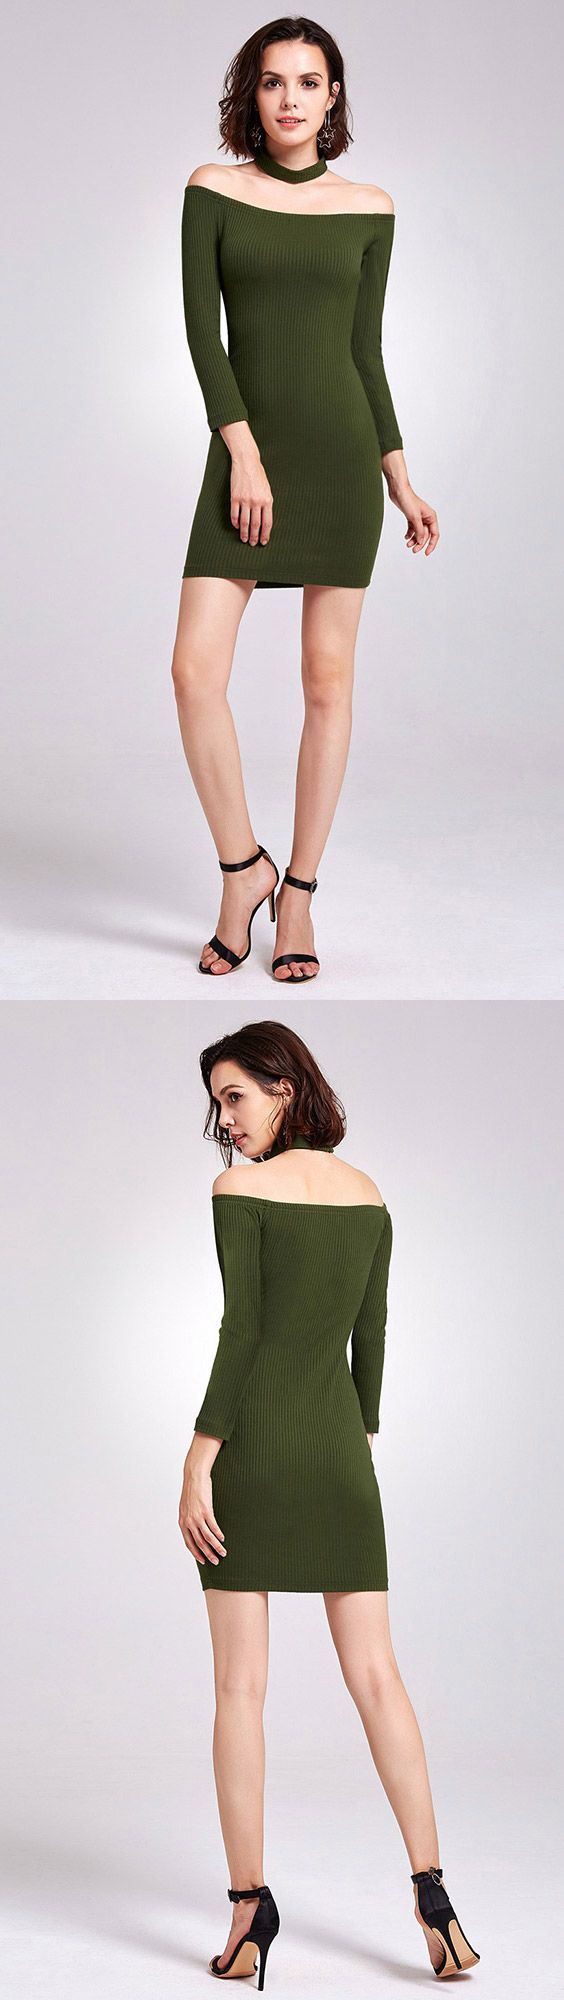 Green bodycon cheap homecoming dress with long sleeves short prom